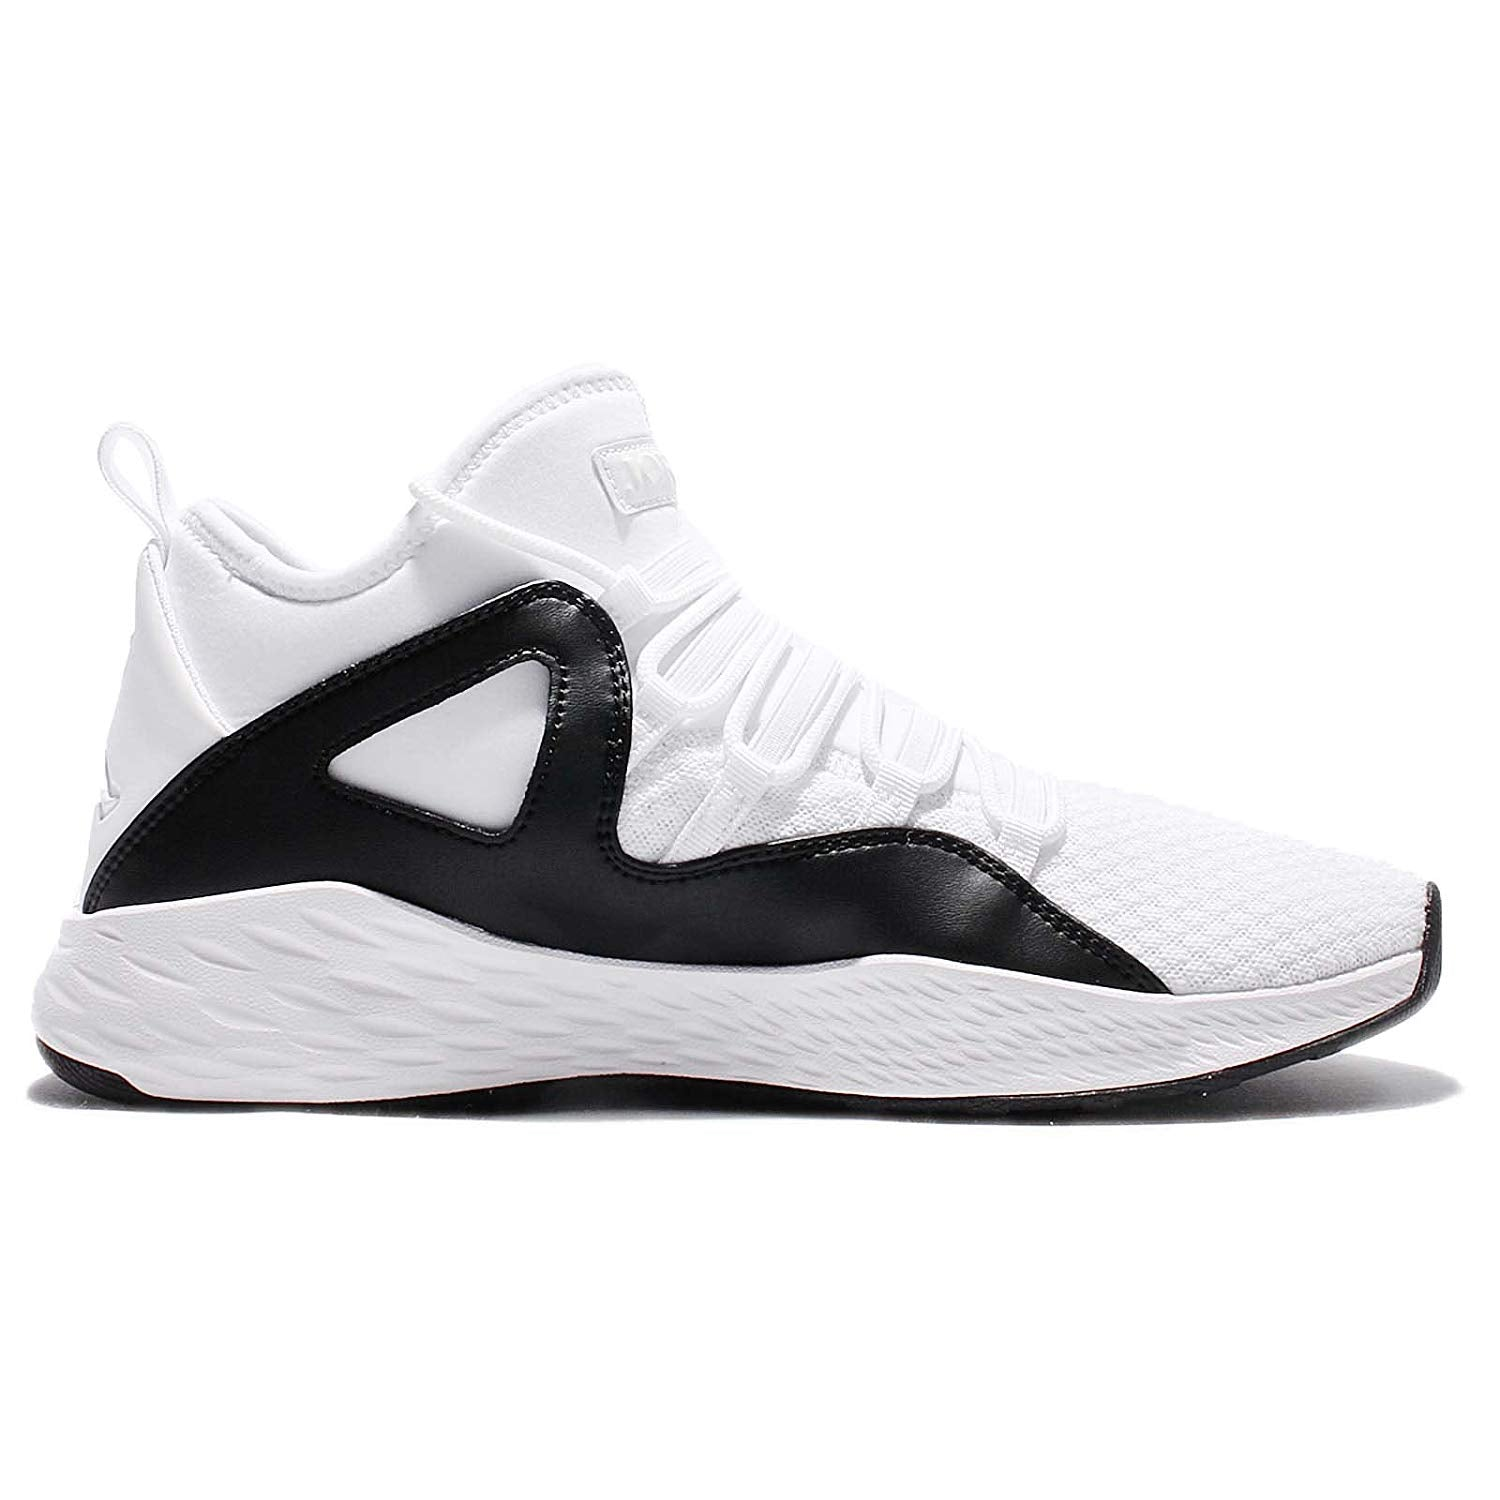 Nike Air Jordan Formula 23 White/Black Men's Basketball Shoes Size 10.5